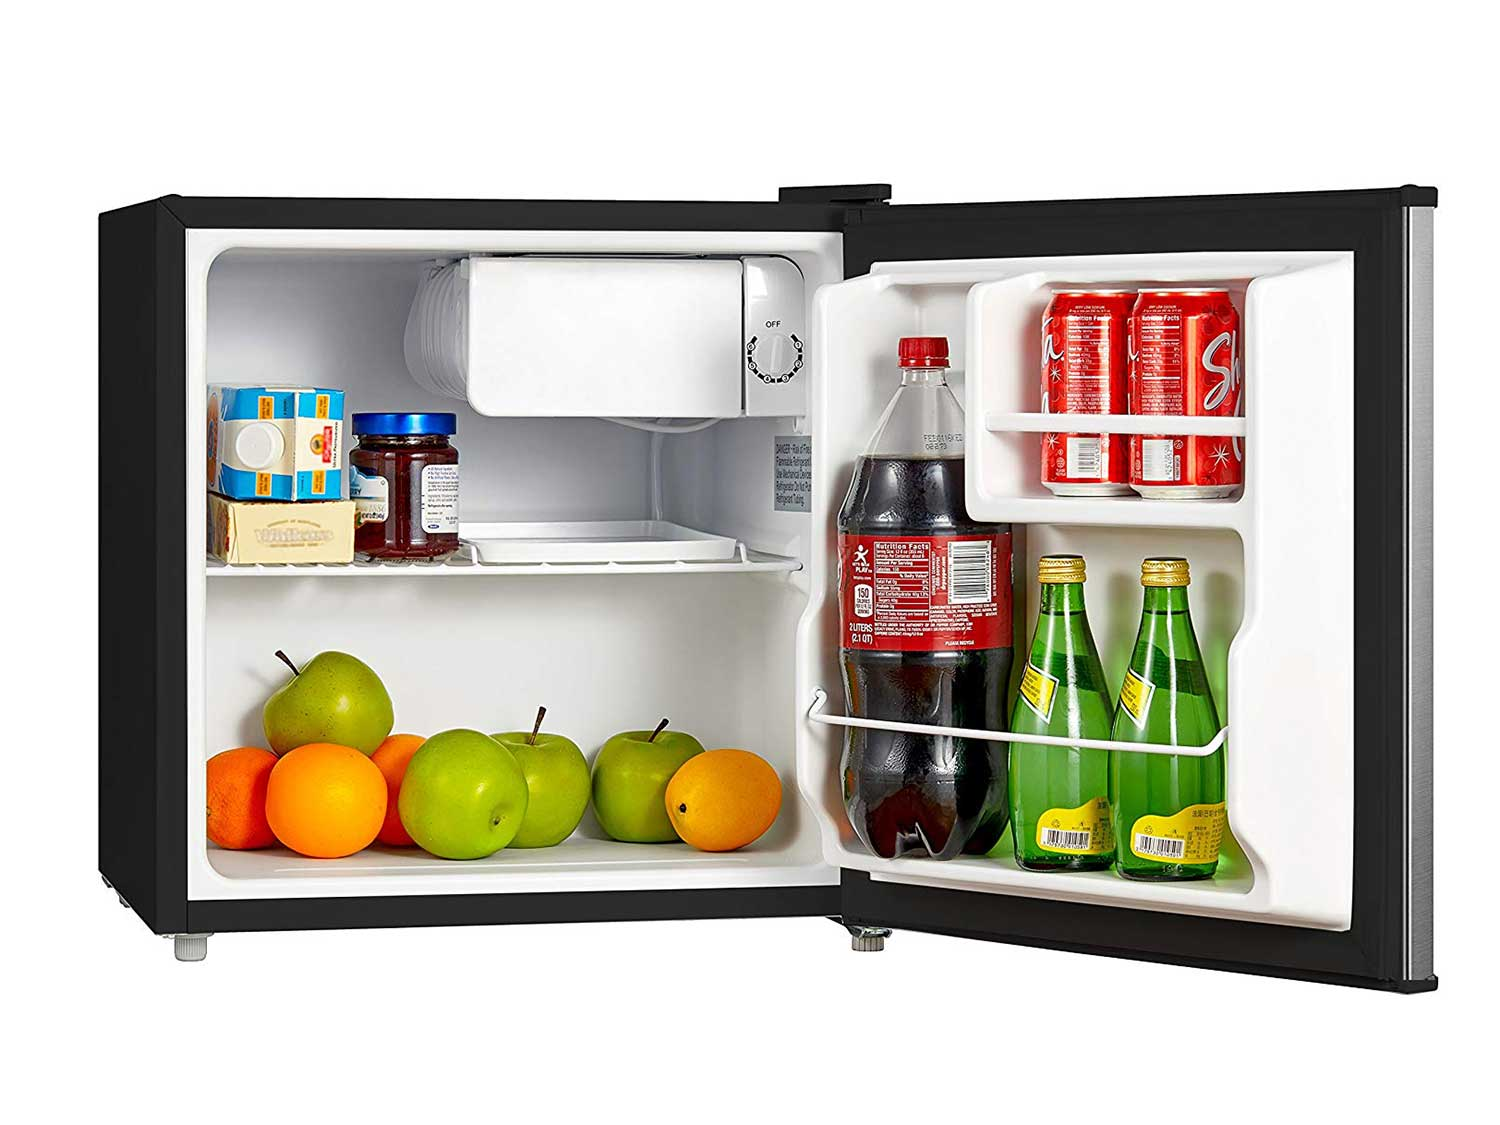 Midea, 1.6 Cu. Ft. Compact Refrigerator, Stainless Steel